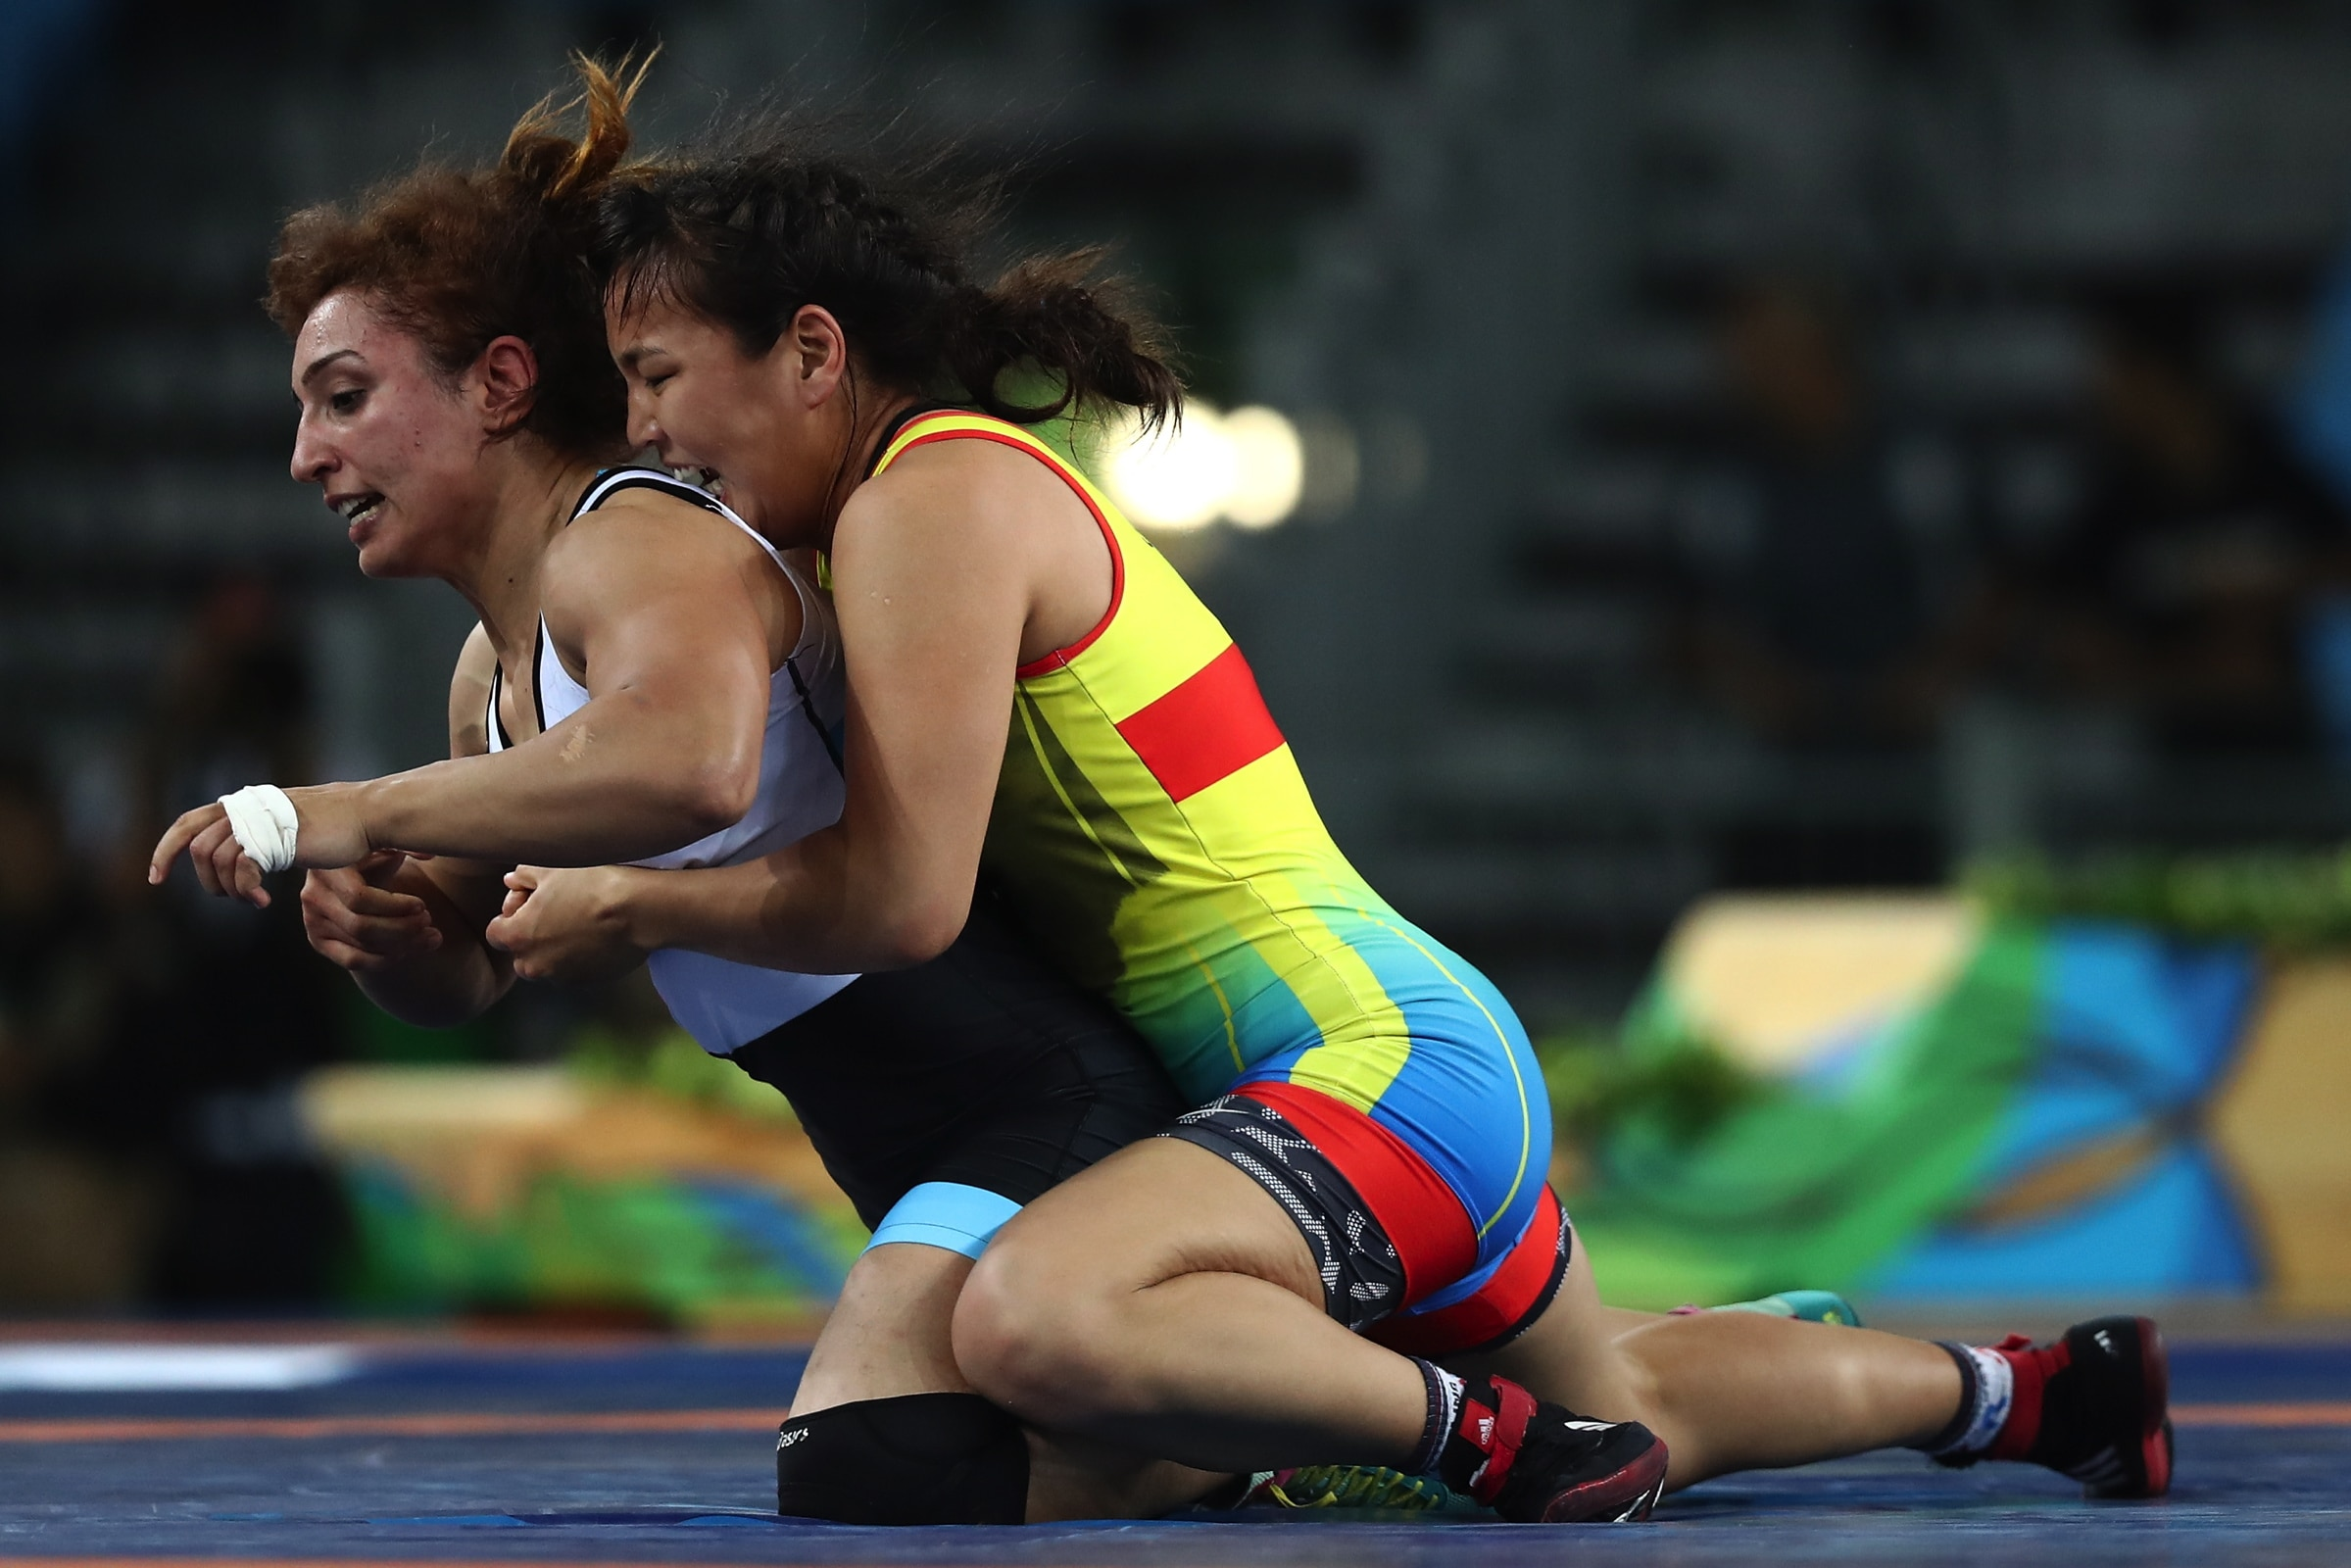 Wrestling - Freestyle 69kg Women